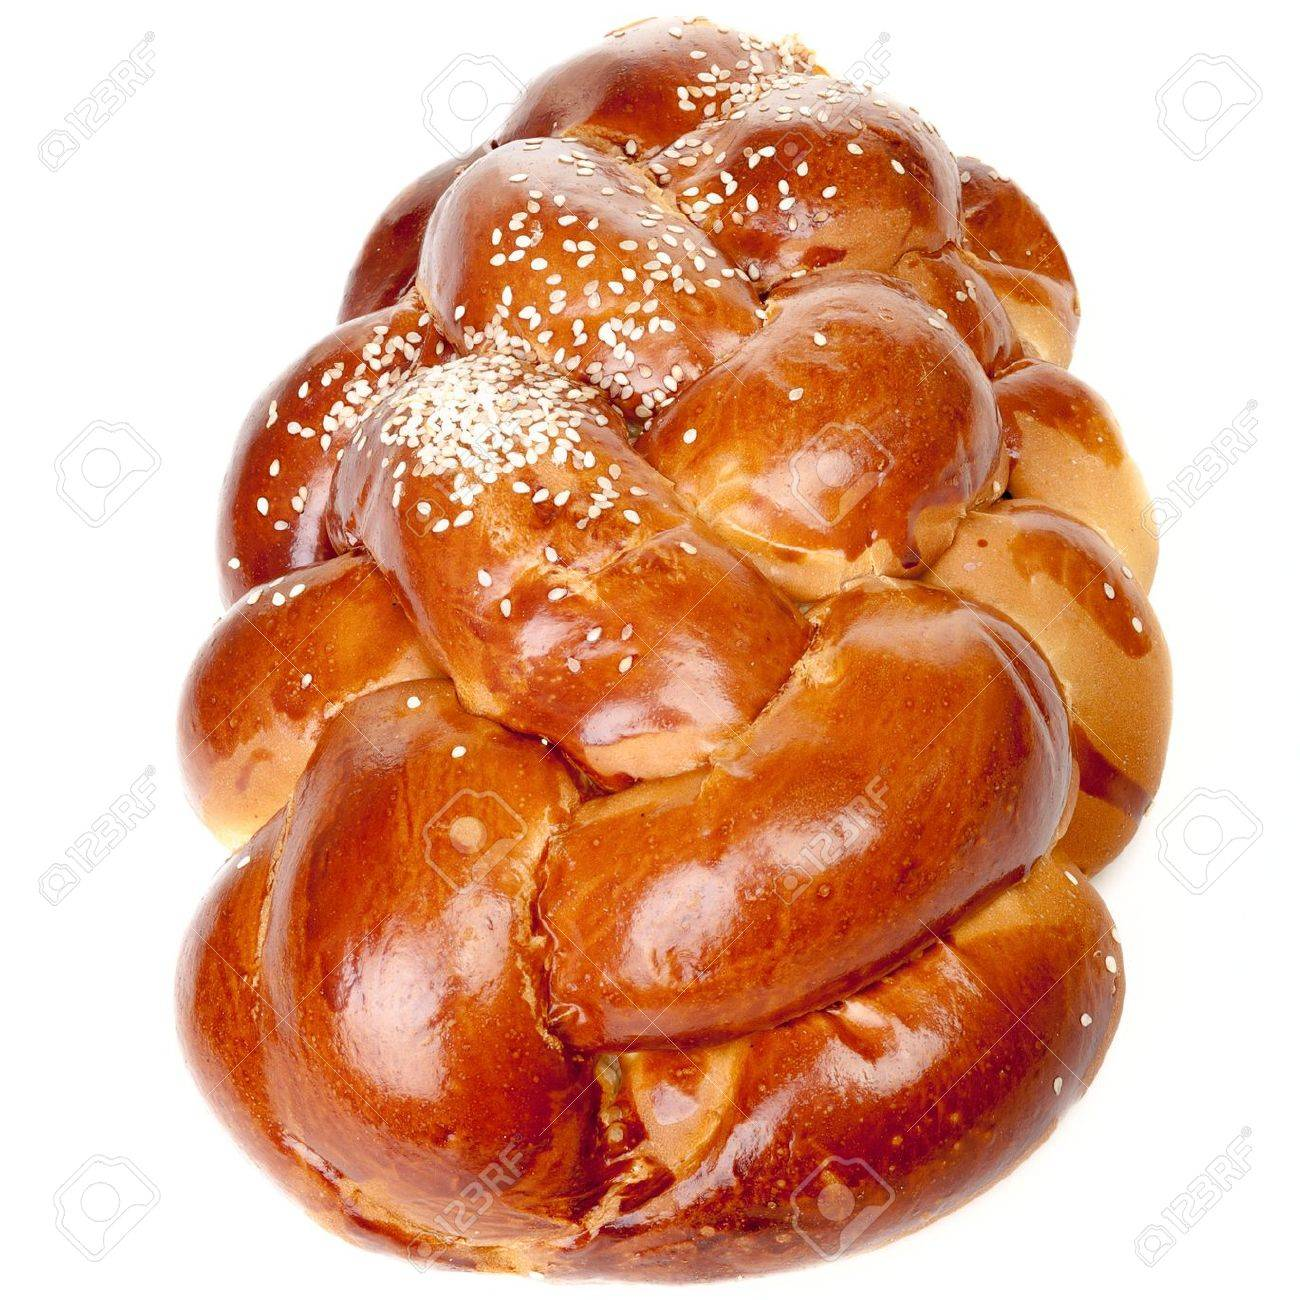 Sabbath challah with white seed isolated on white background Stock Photo - 17595923